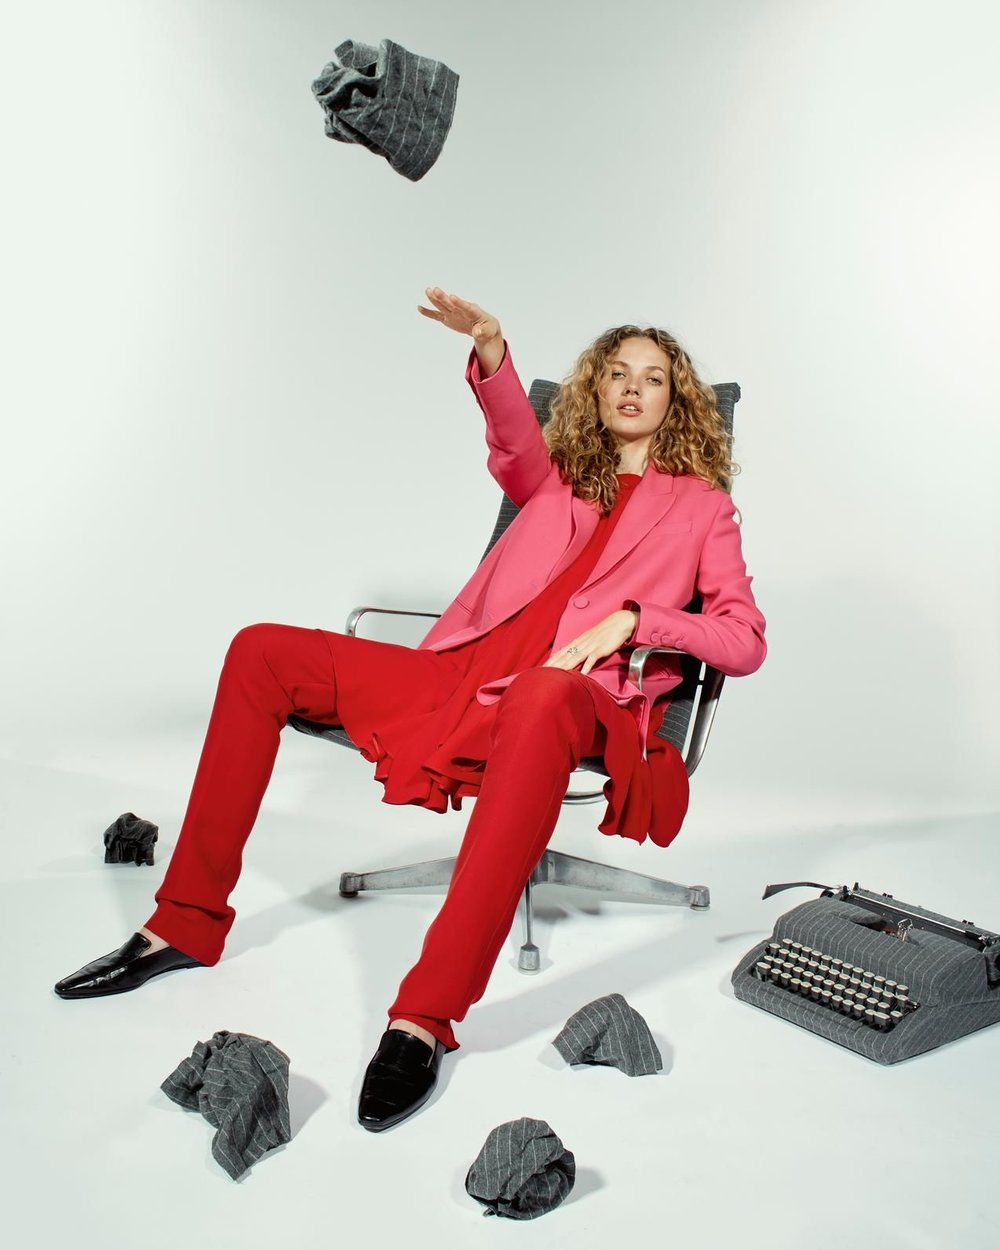 The New Power Suit photographed by Kale Friesen